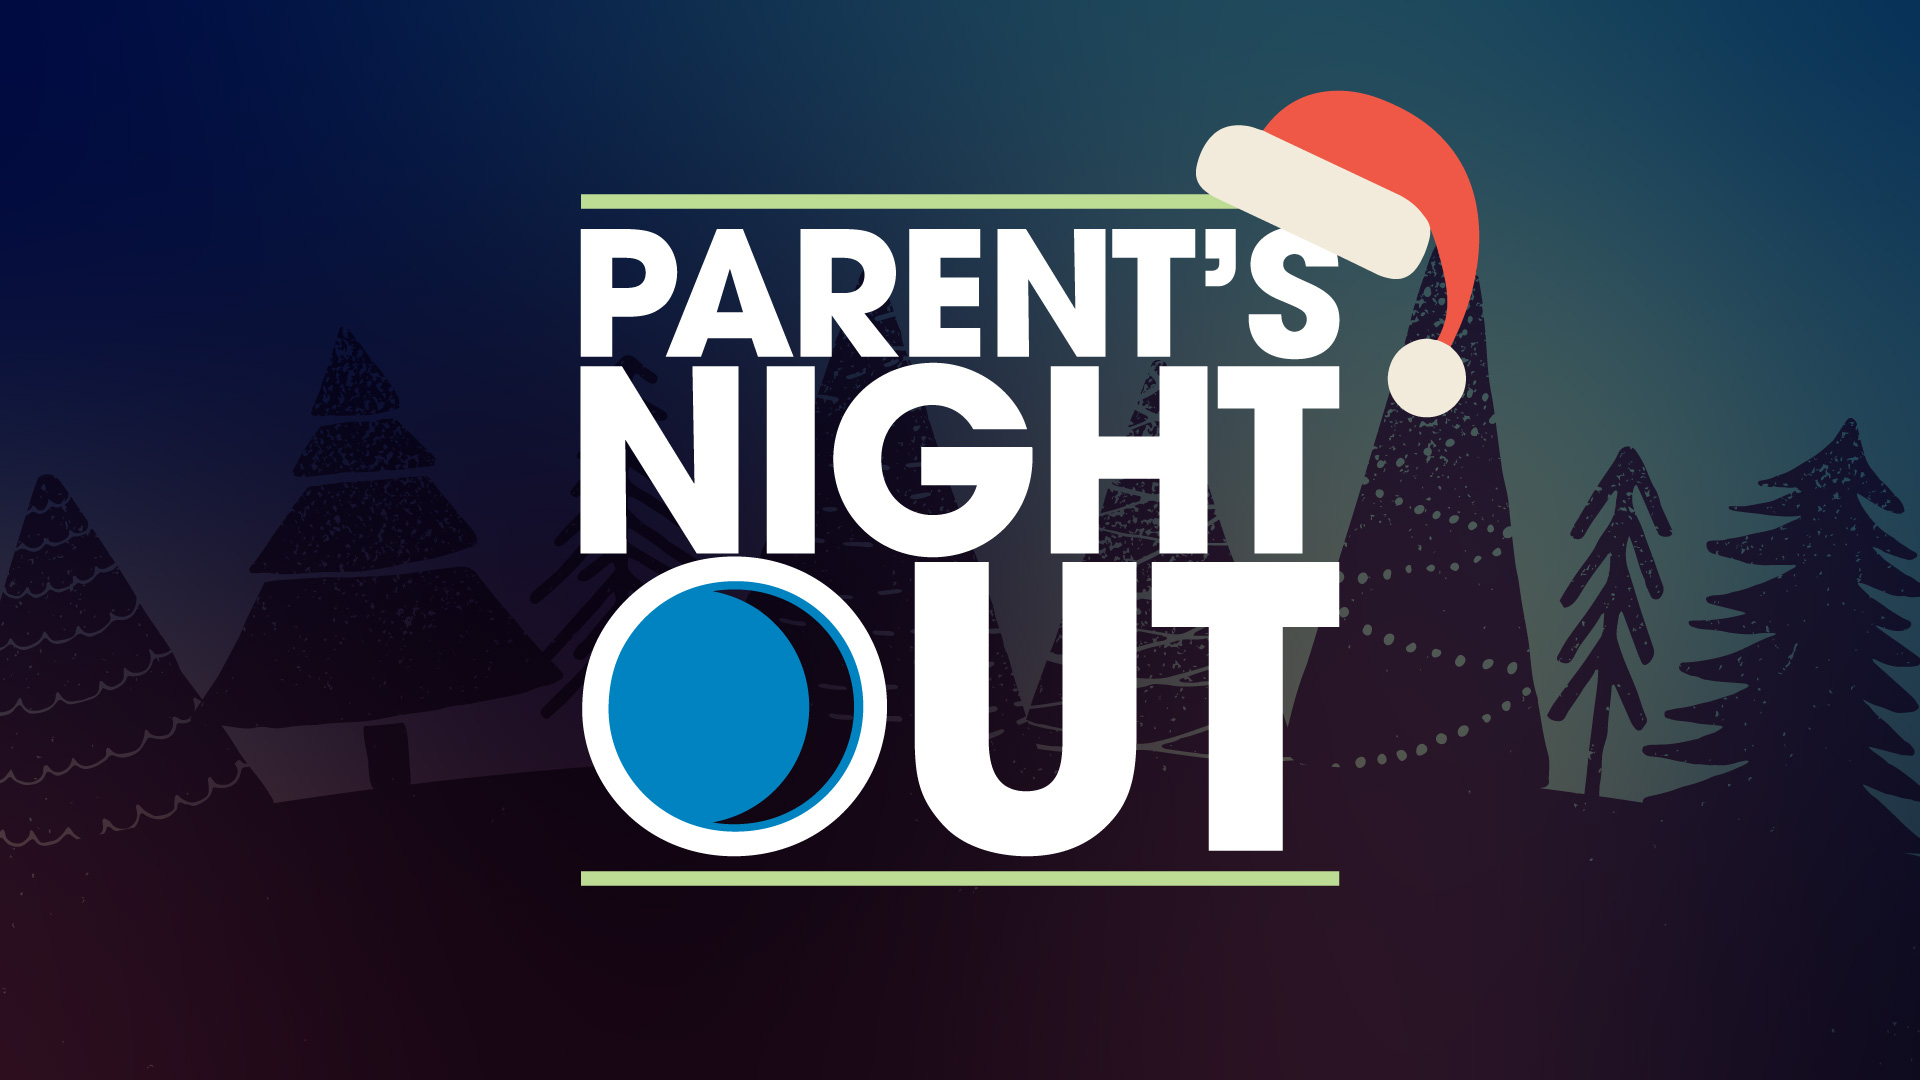 Parentsnightout slide 1920x1080